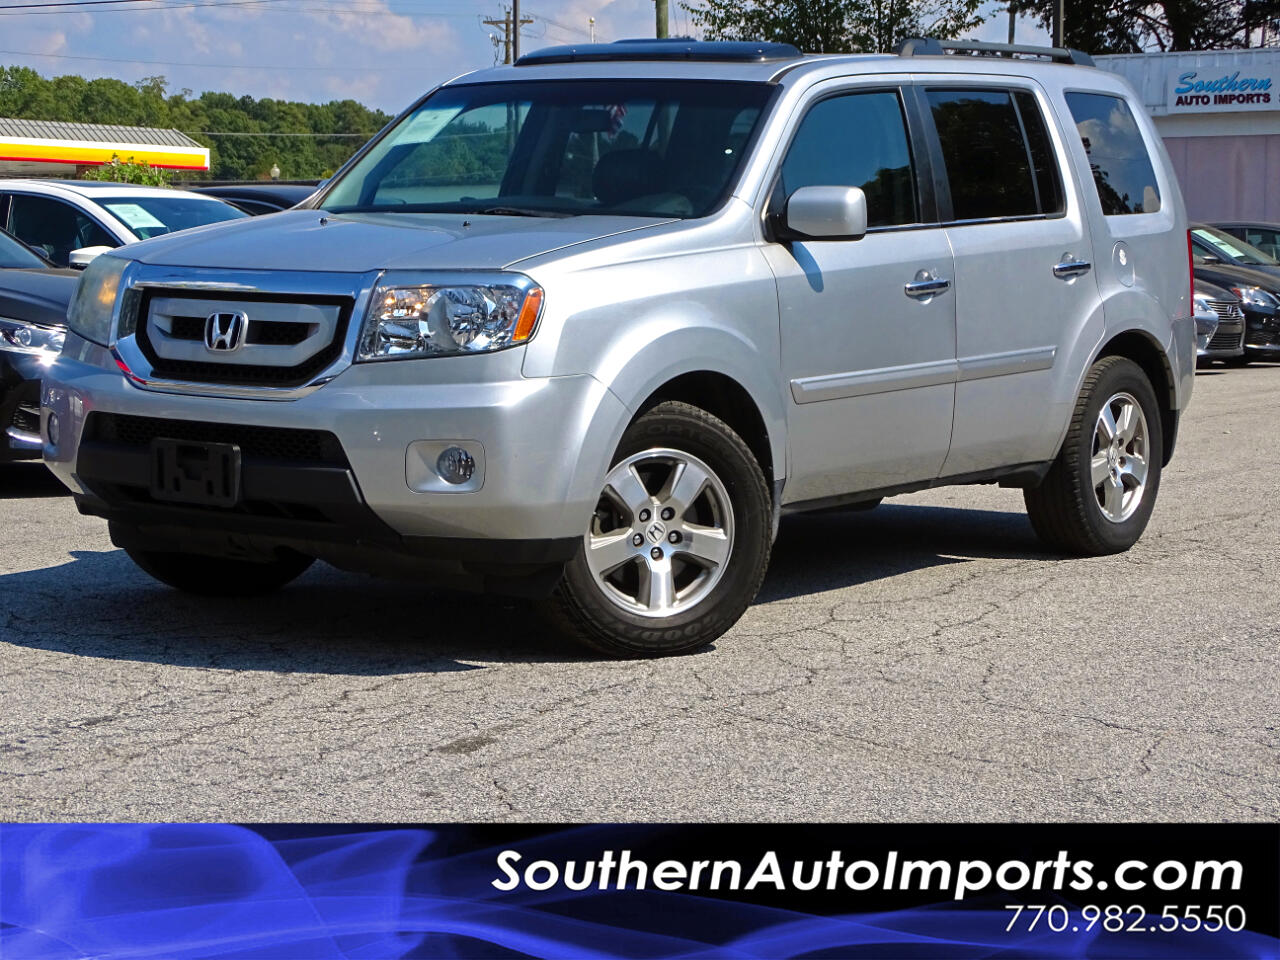 2010 Honda Pilot For Sale >> Used 2010 Honda Pilot For Sale In Stone Mountain Ga 30087